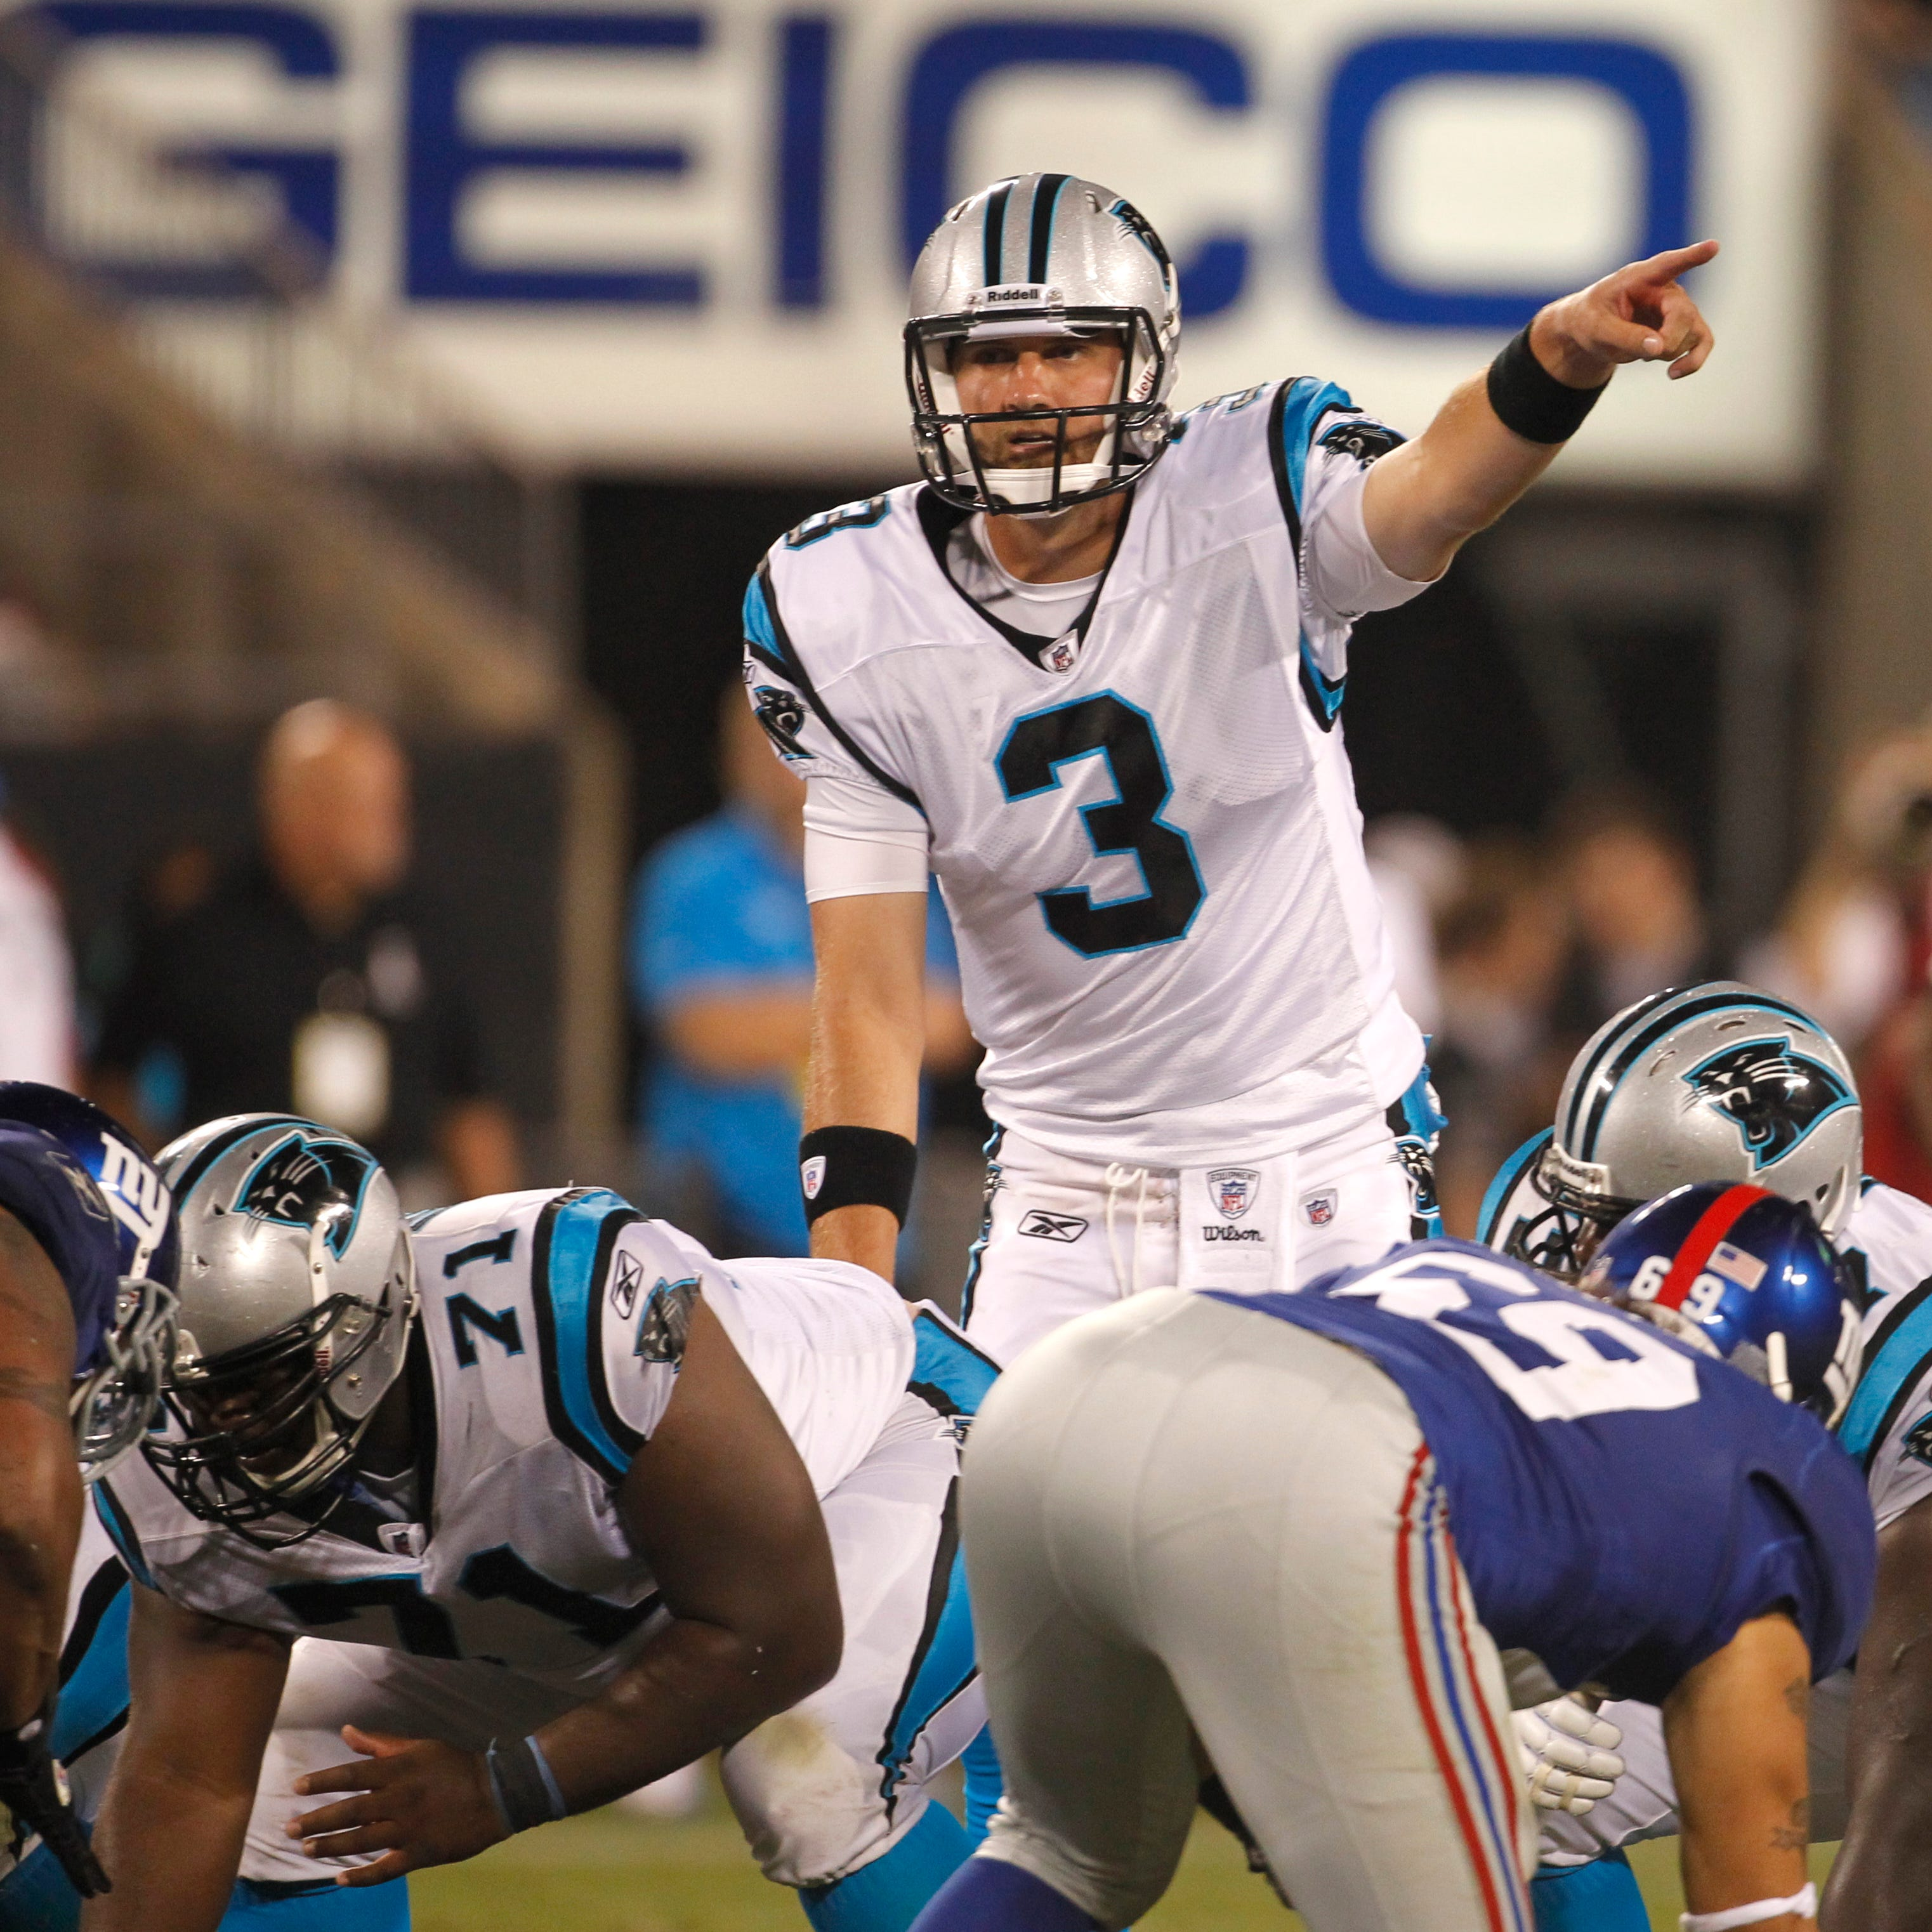 Derek Anderson named Buffalo Bills starting QB for Sunday in Indianapolis